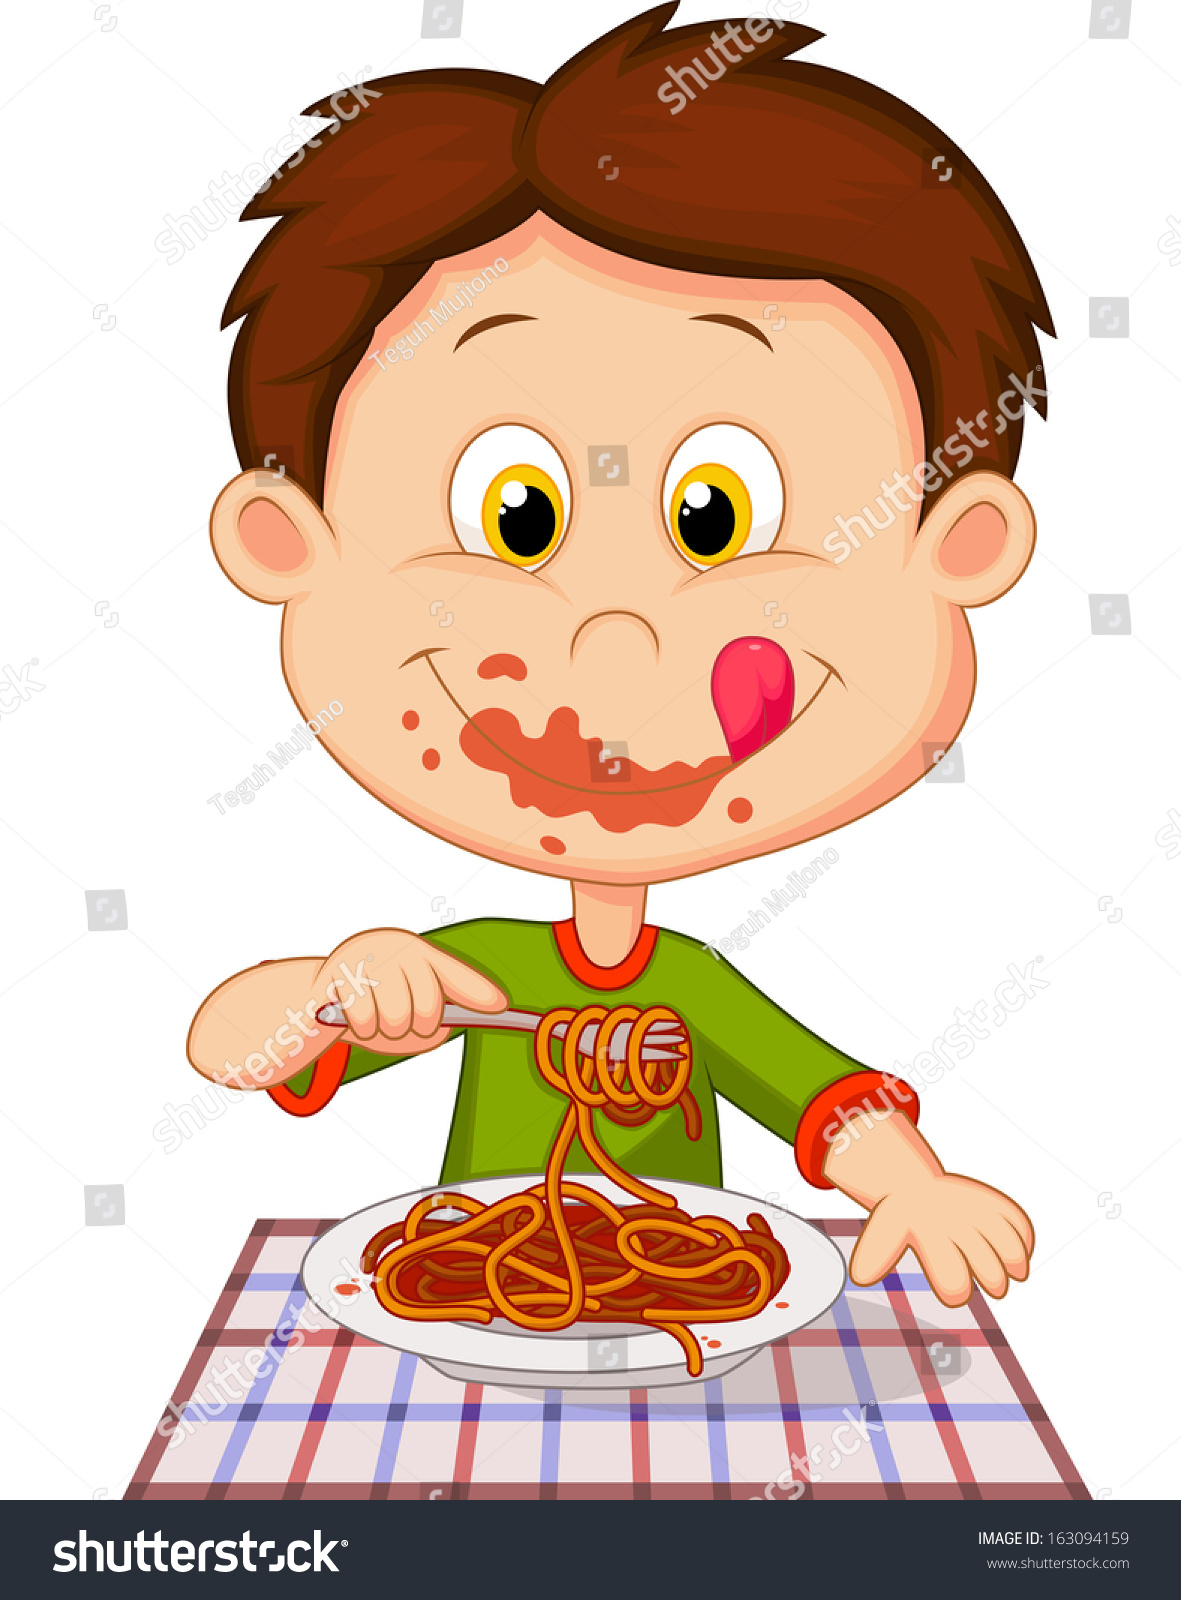 baby eating clipart - photo #38